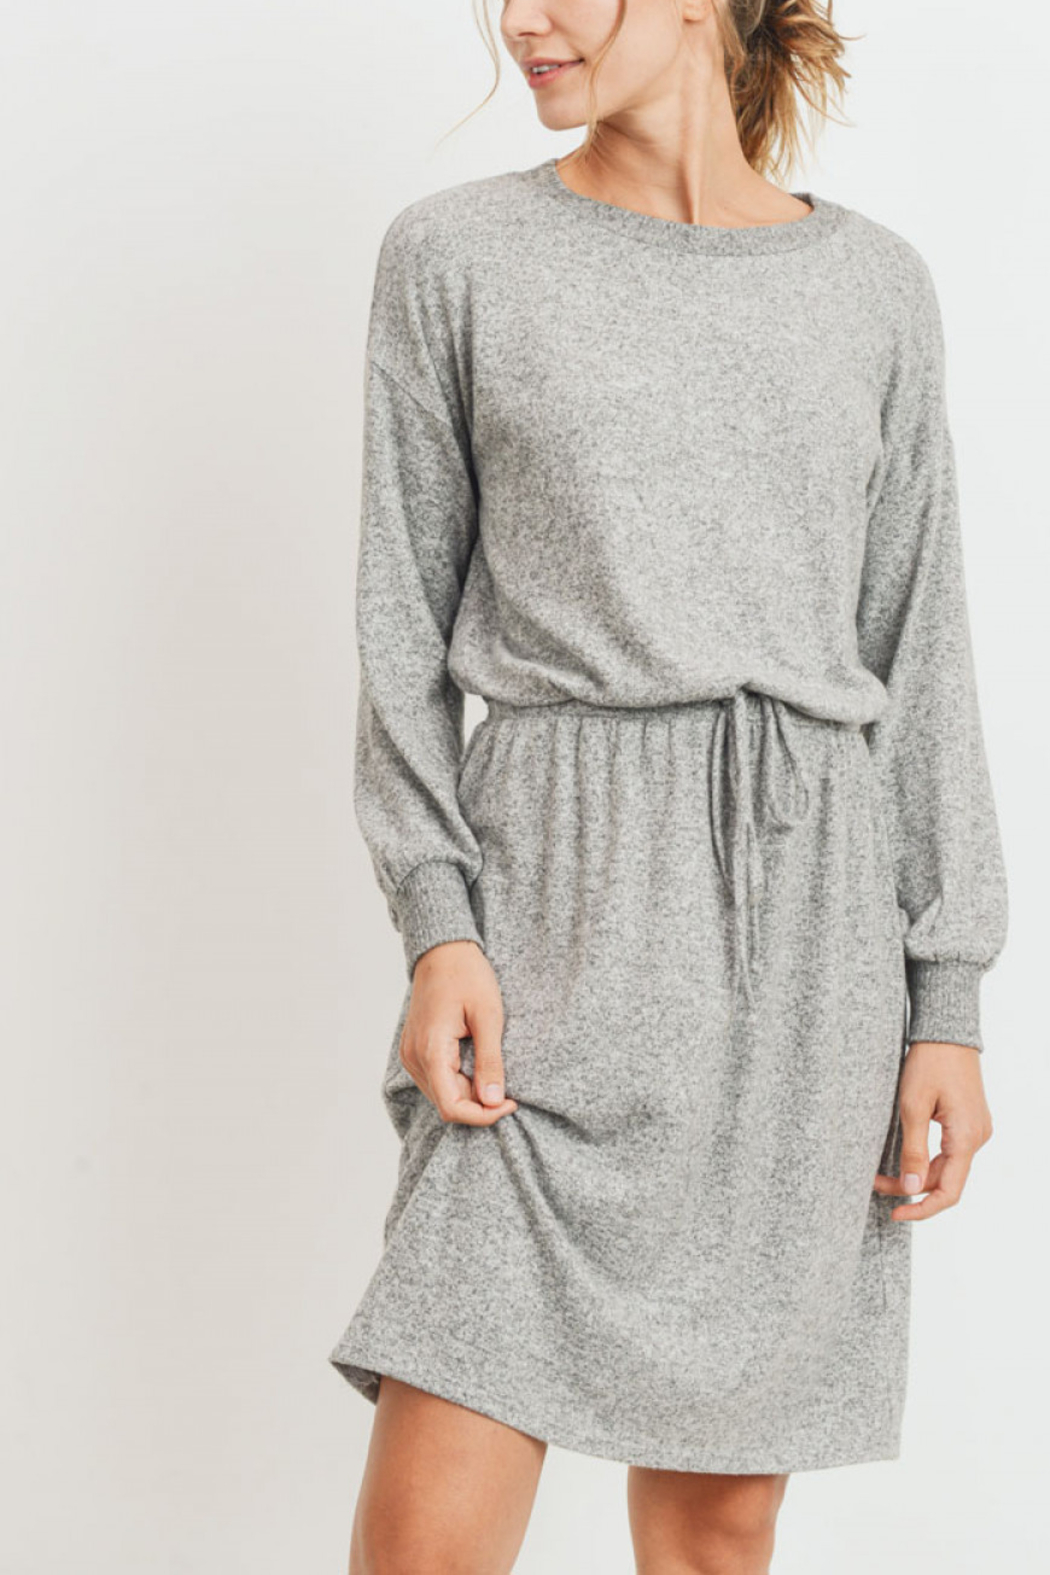 Lyn -Maree's Ultra Soft Midi Dress - Front Cropped Image